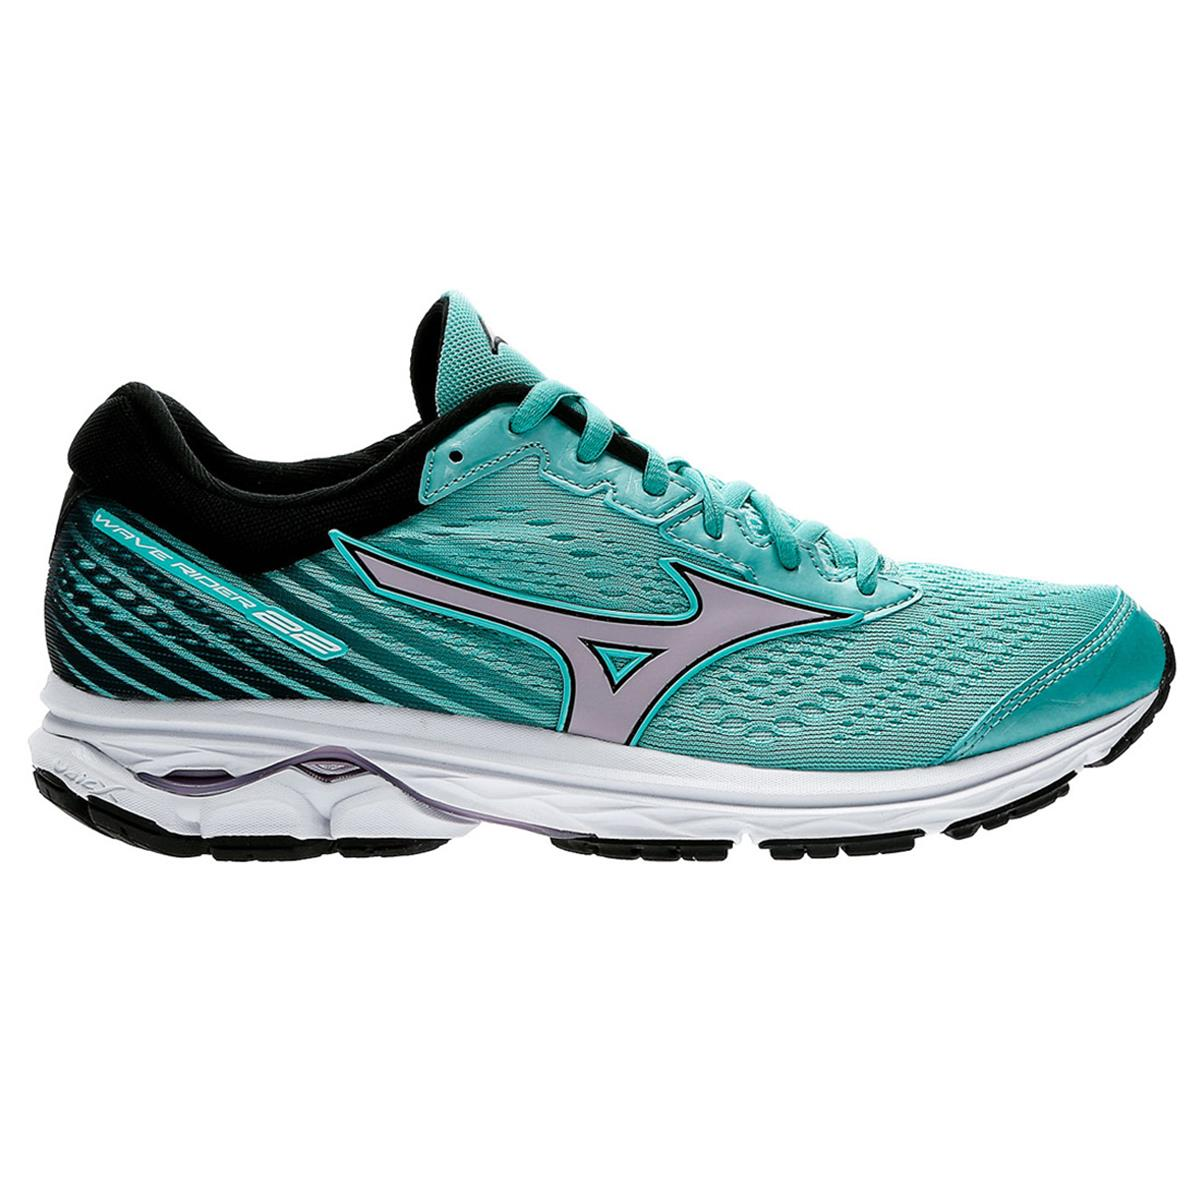 Mizuno Wave Rider 22 Womens Running Shoes (Angel Blue- Lavender Frost- Black)